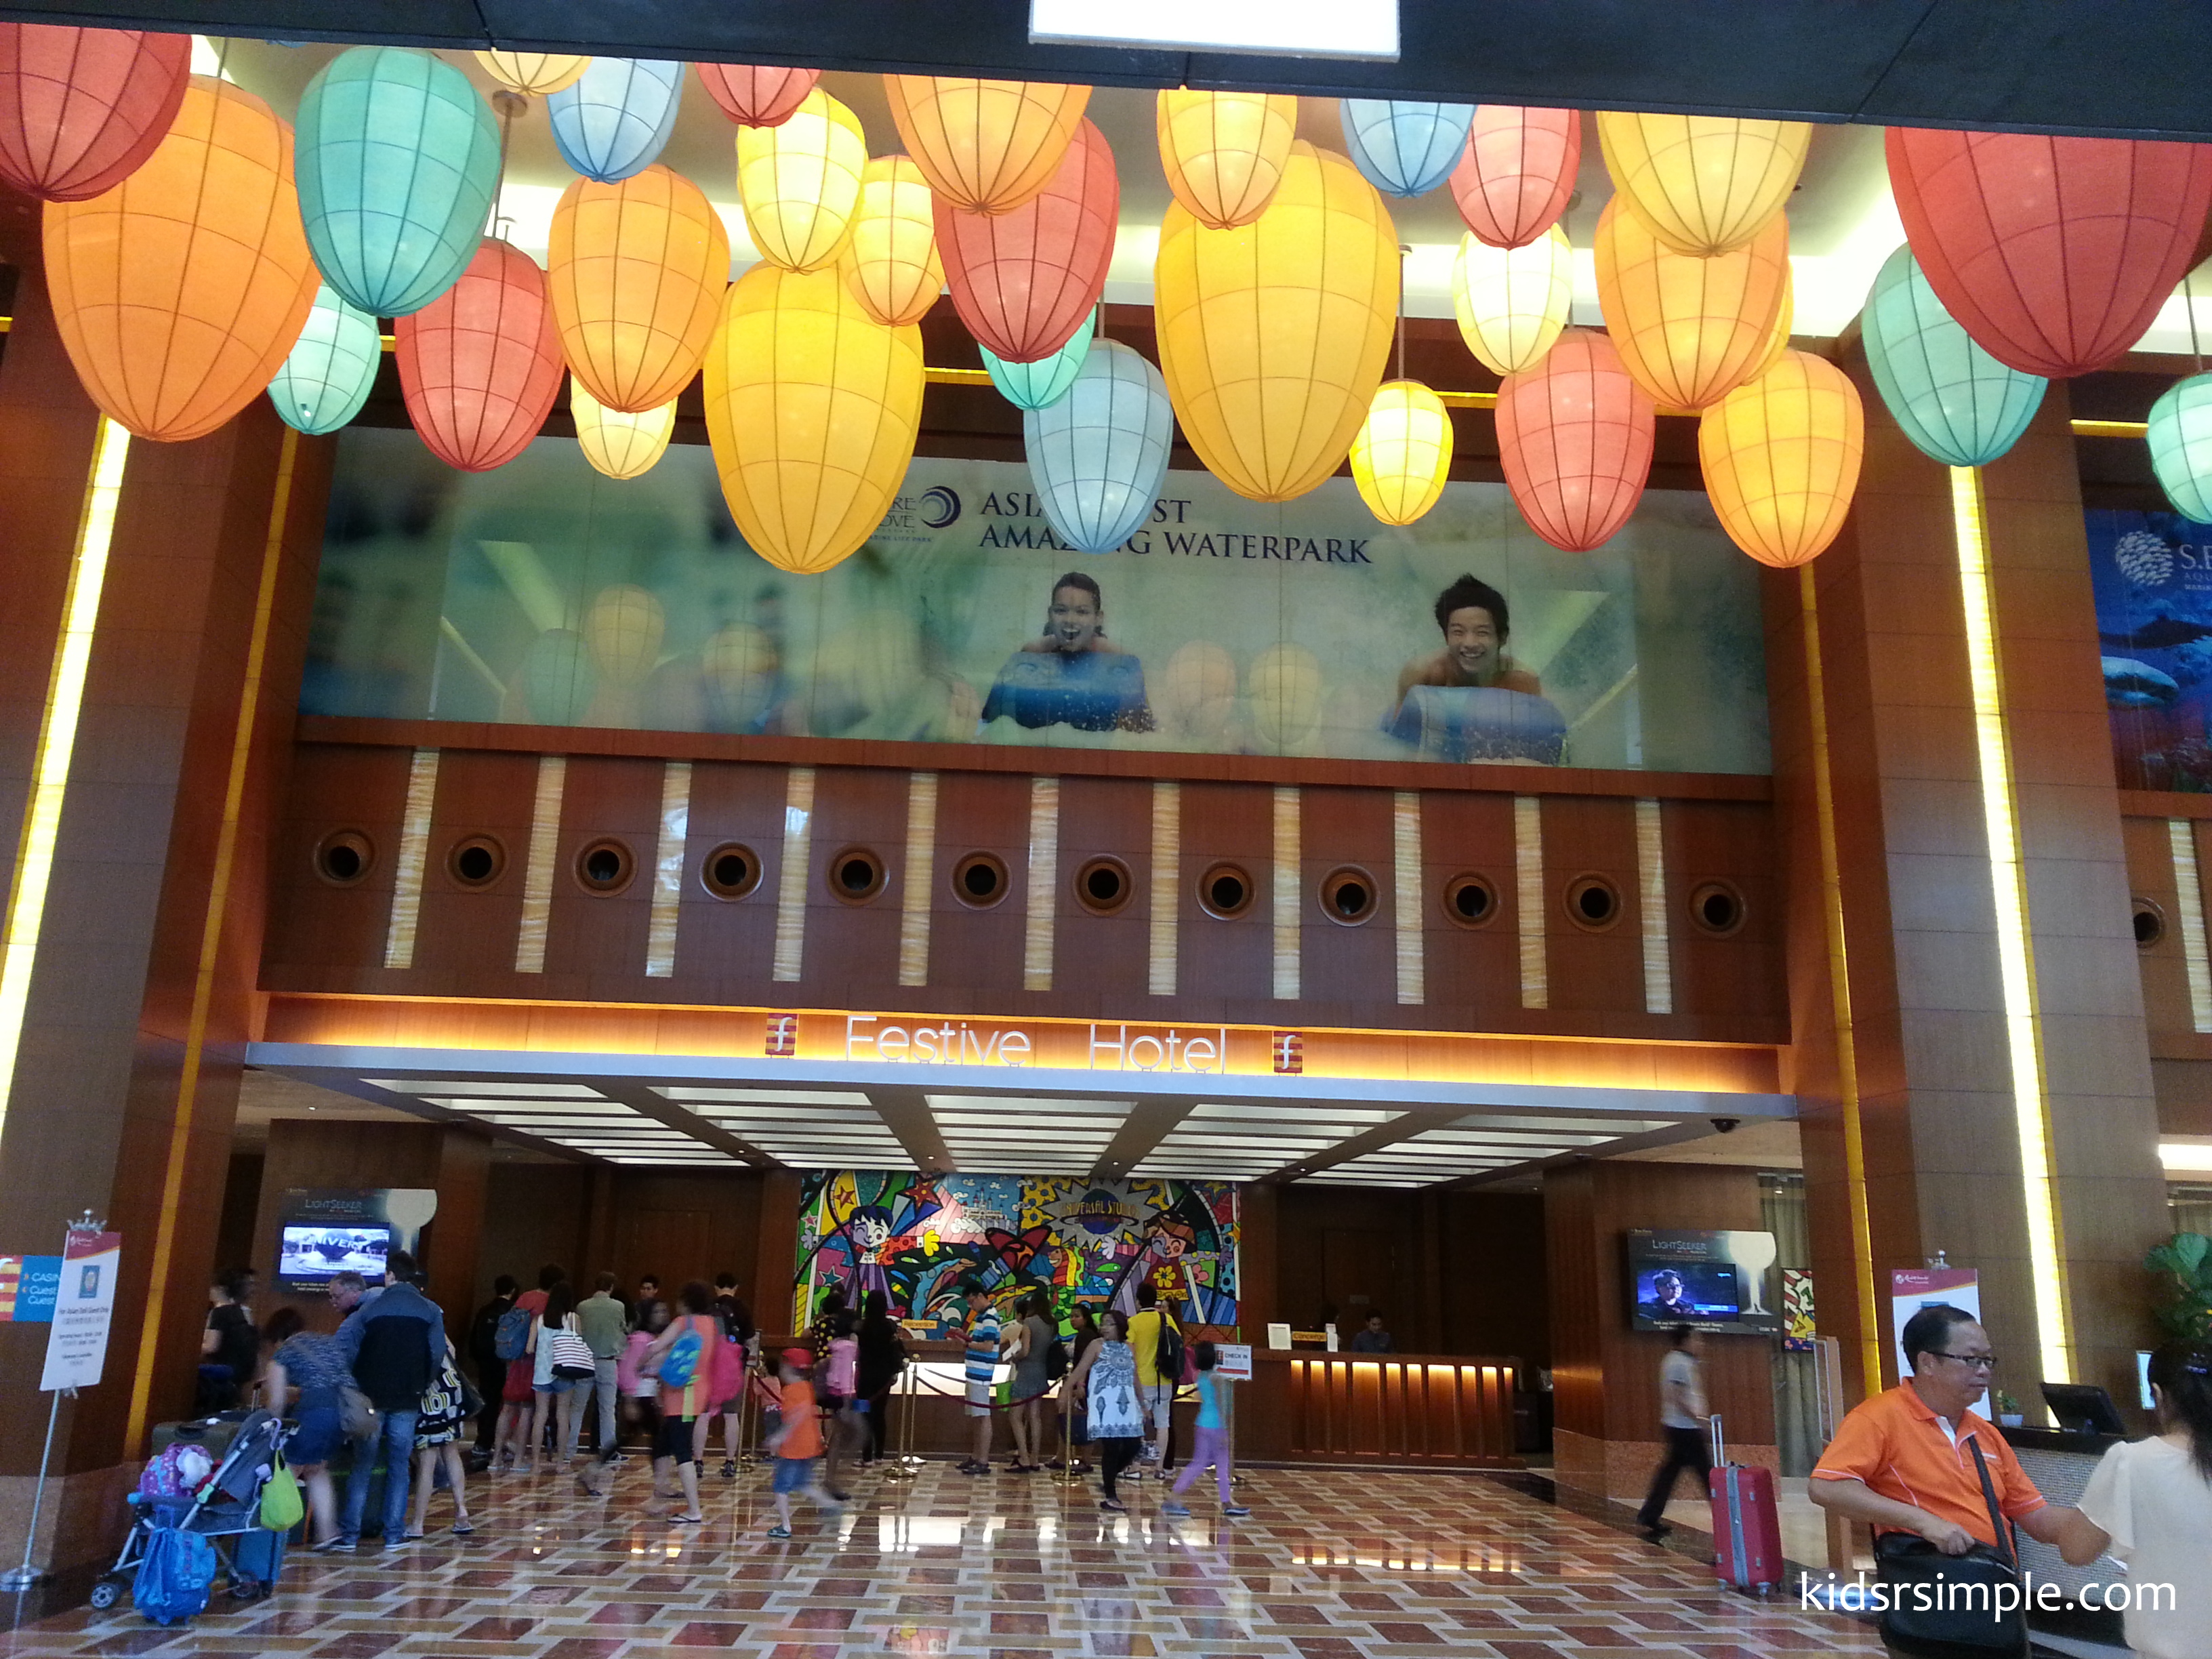 festive hotel staycation at rws - kids 'r' simple